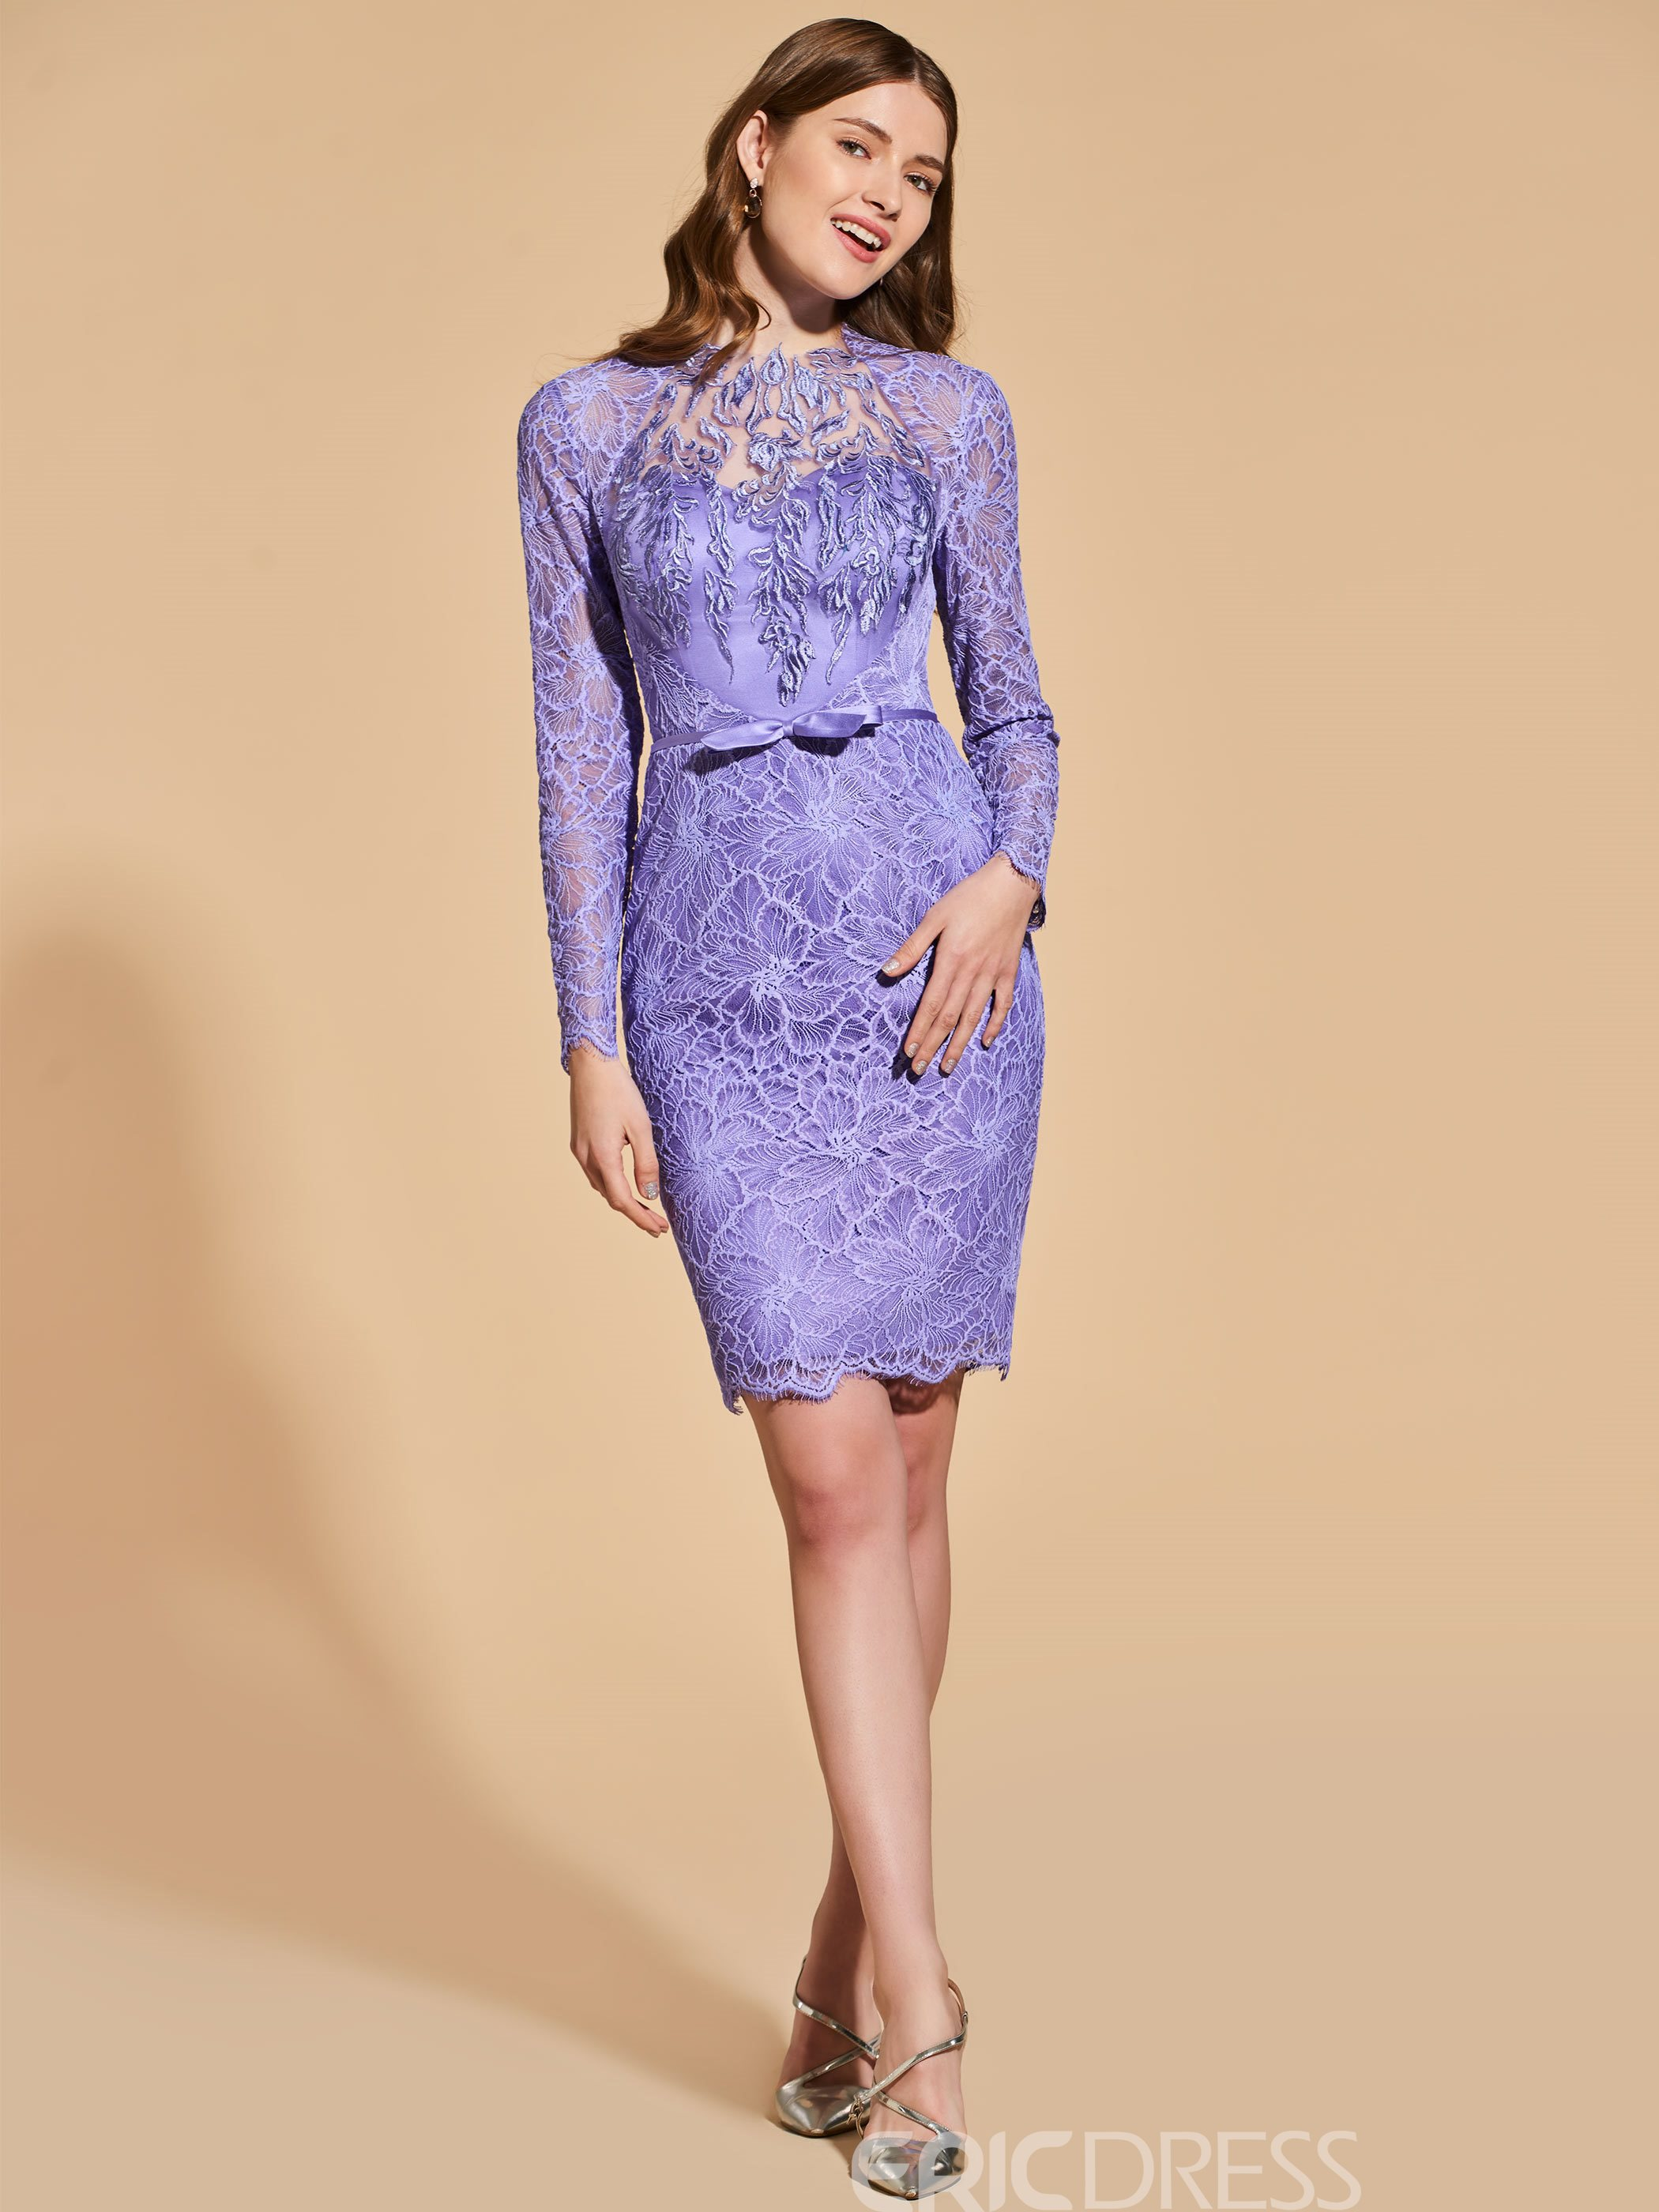 Ericdress Sheath Long Sleeve Lace Bodycon Homecoming Dress With Bowknot